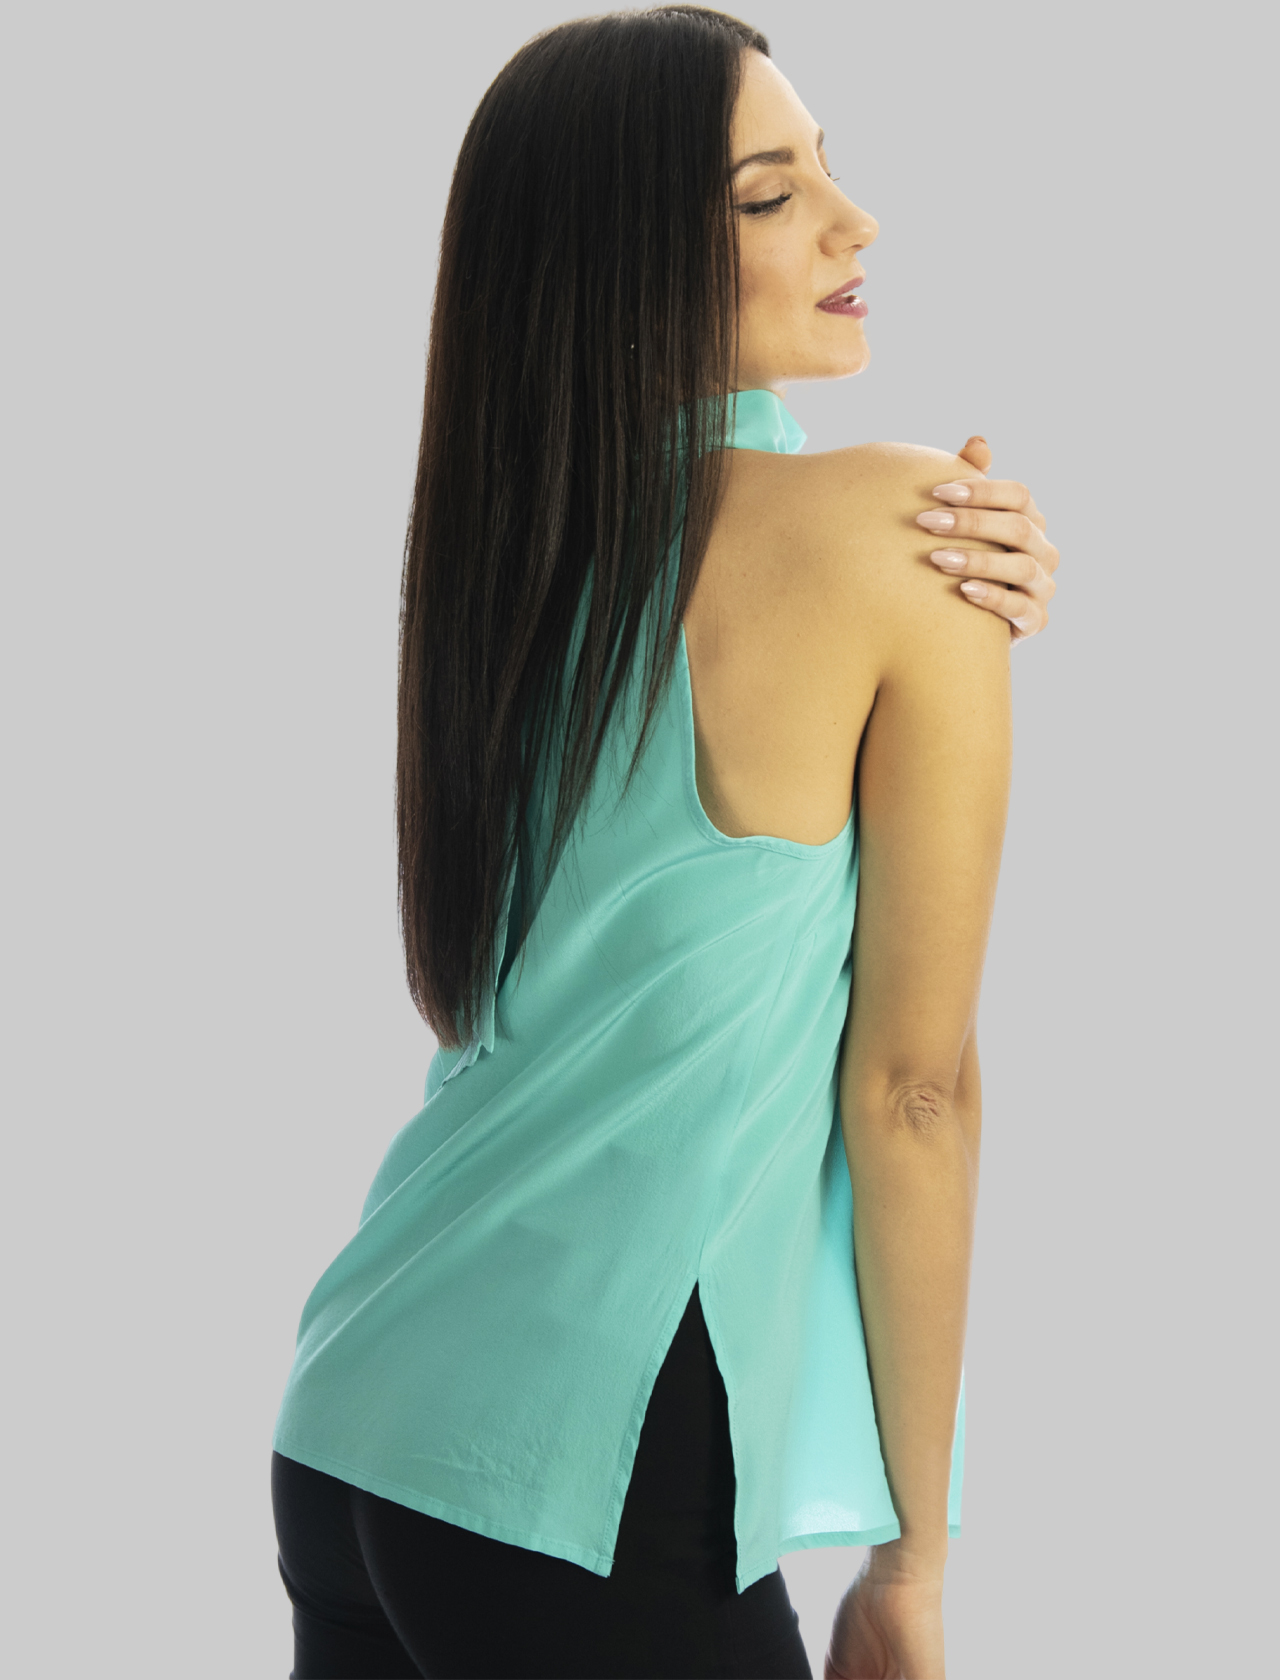 Women's Clothing Turquoise Crepe de Chine Silk Top with Back Bow Maliparmi | Shirts and tops | JP54043004482012